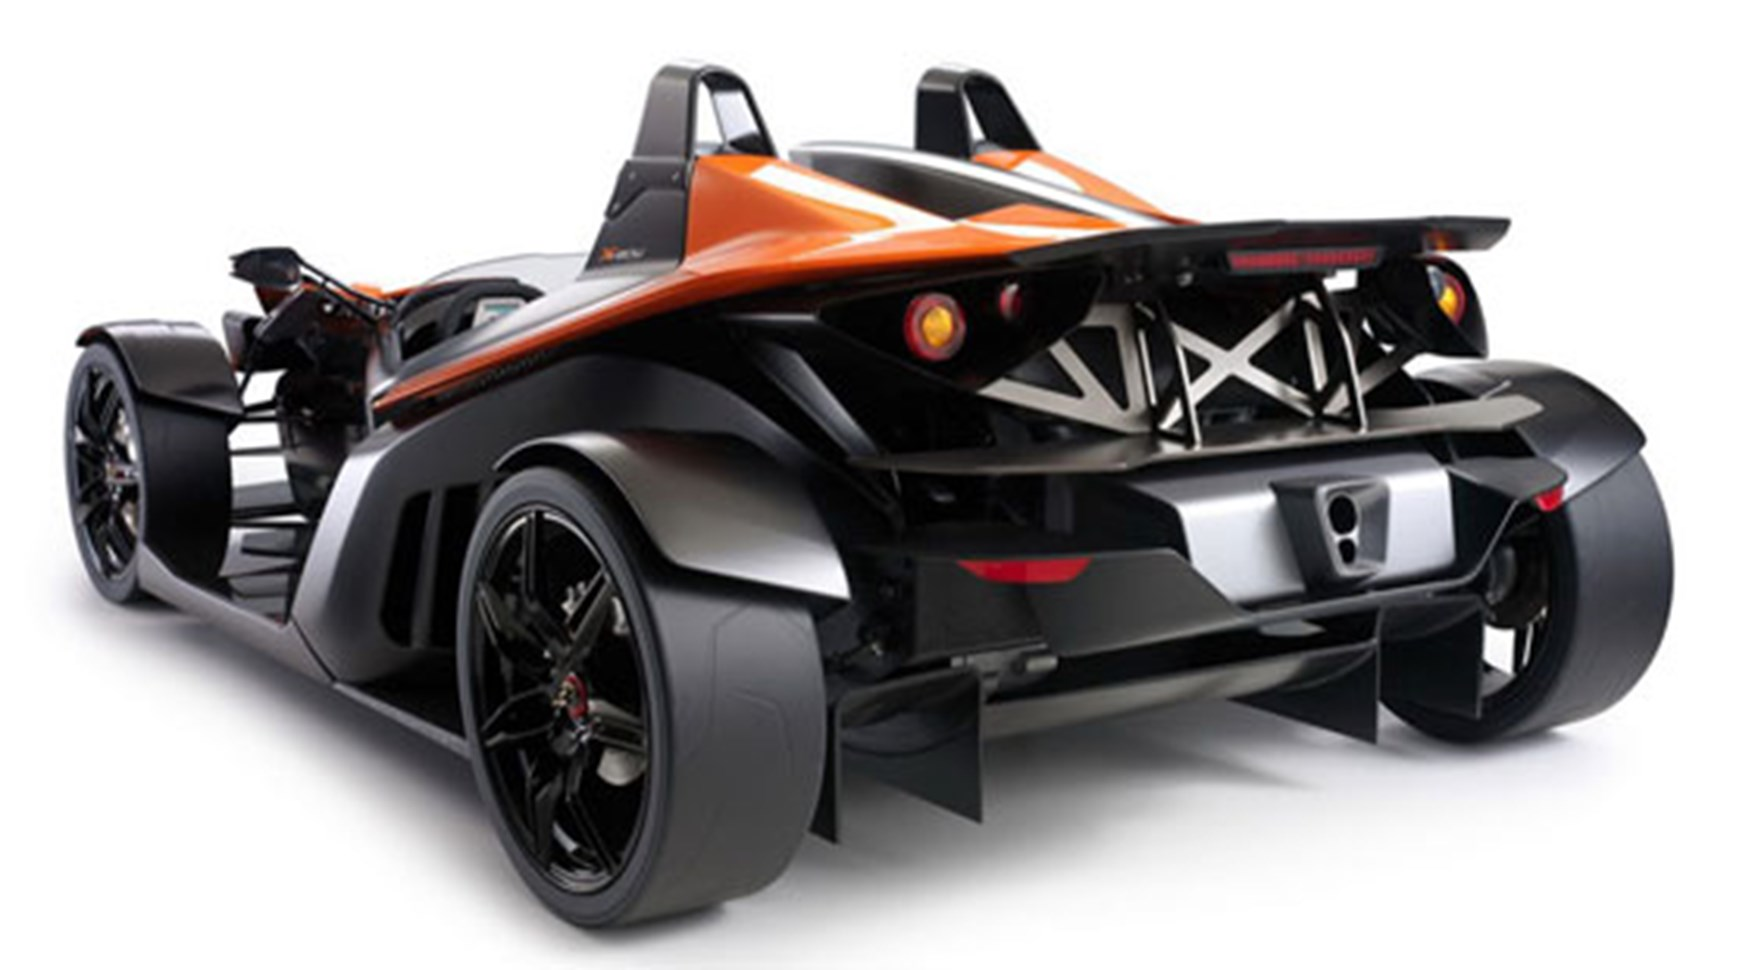 KTM Crossbow unveiled by CAR Magazine